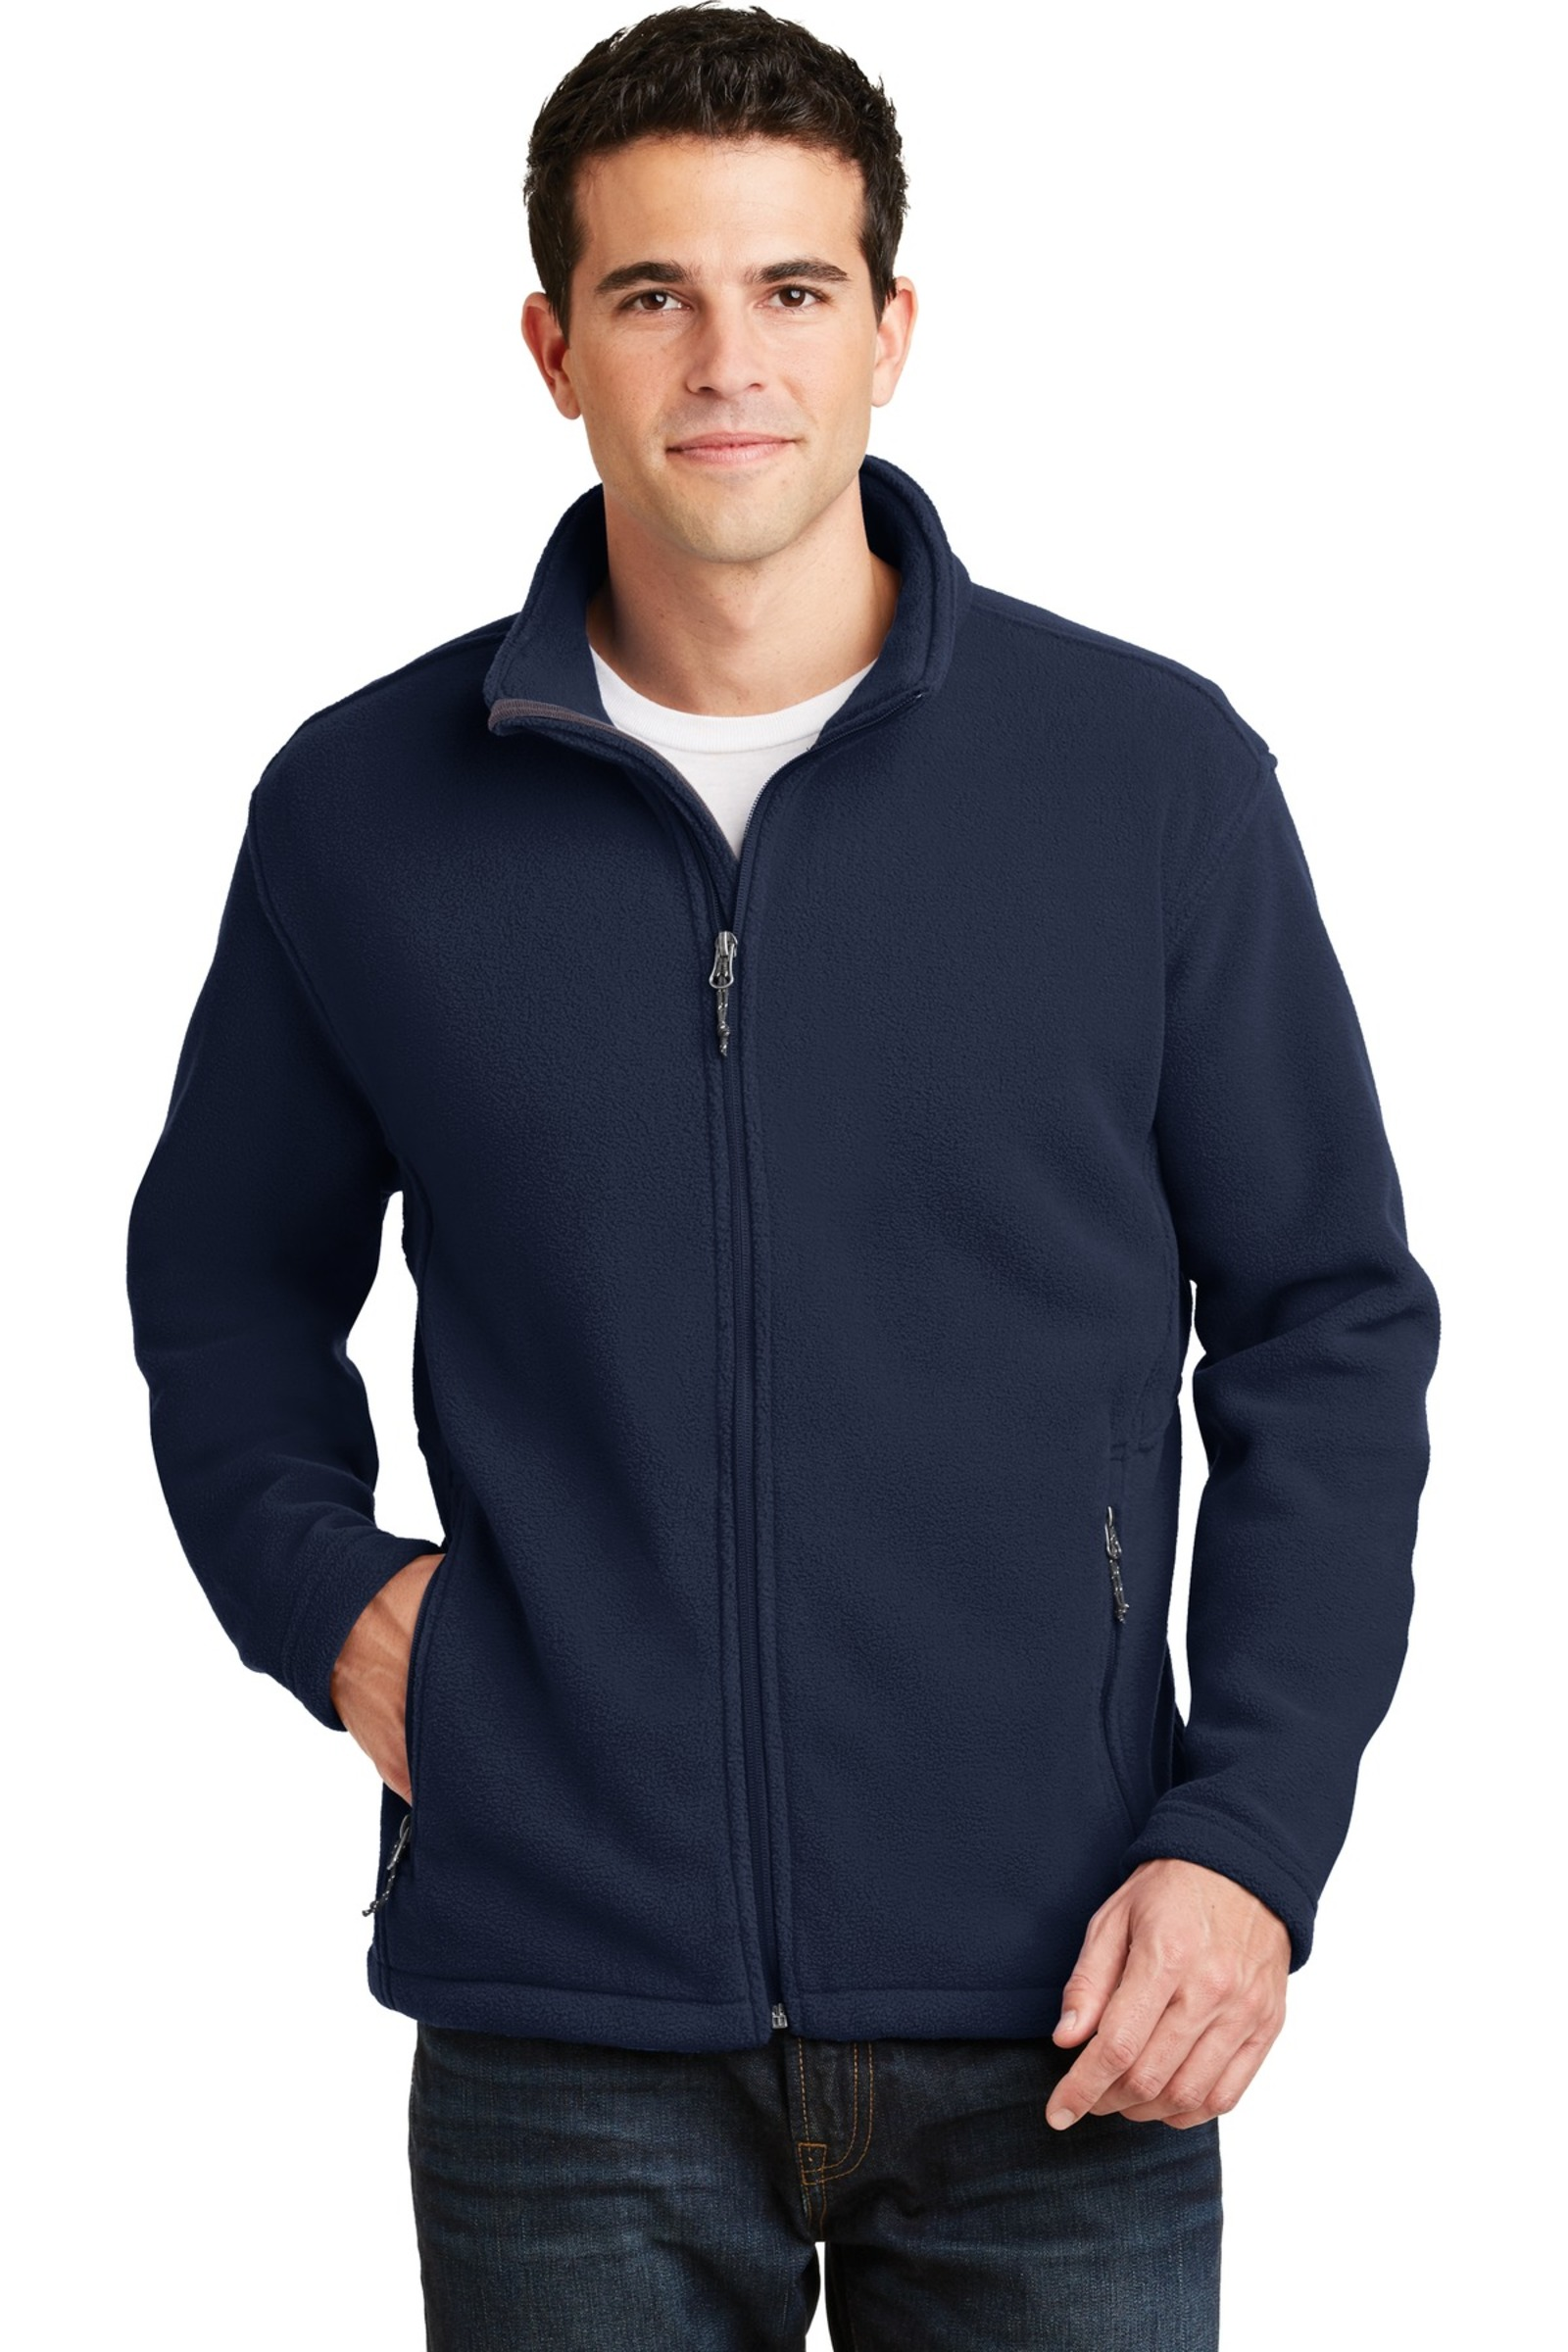 Port Authority Embroidered Men's Value Fleece Jacket